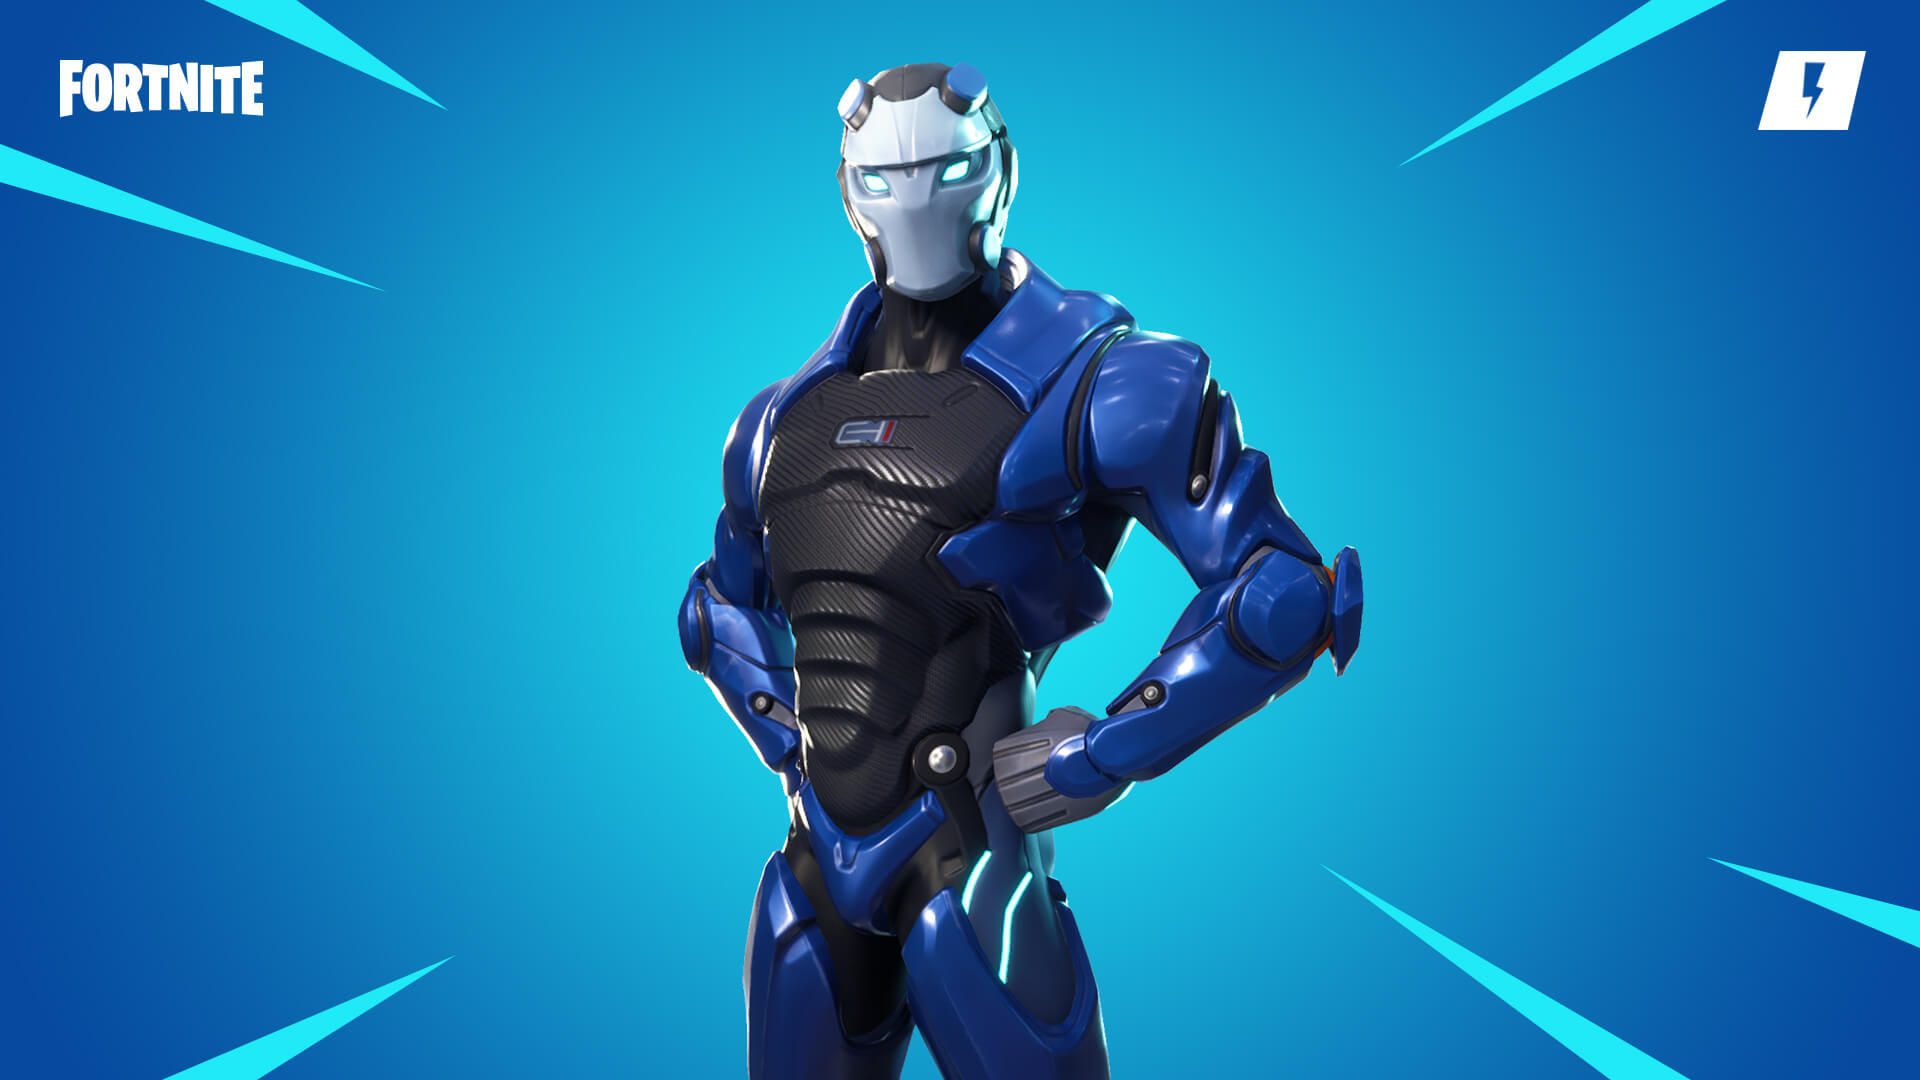 fortnite-carbide-hero.jpg